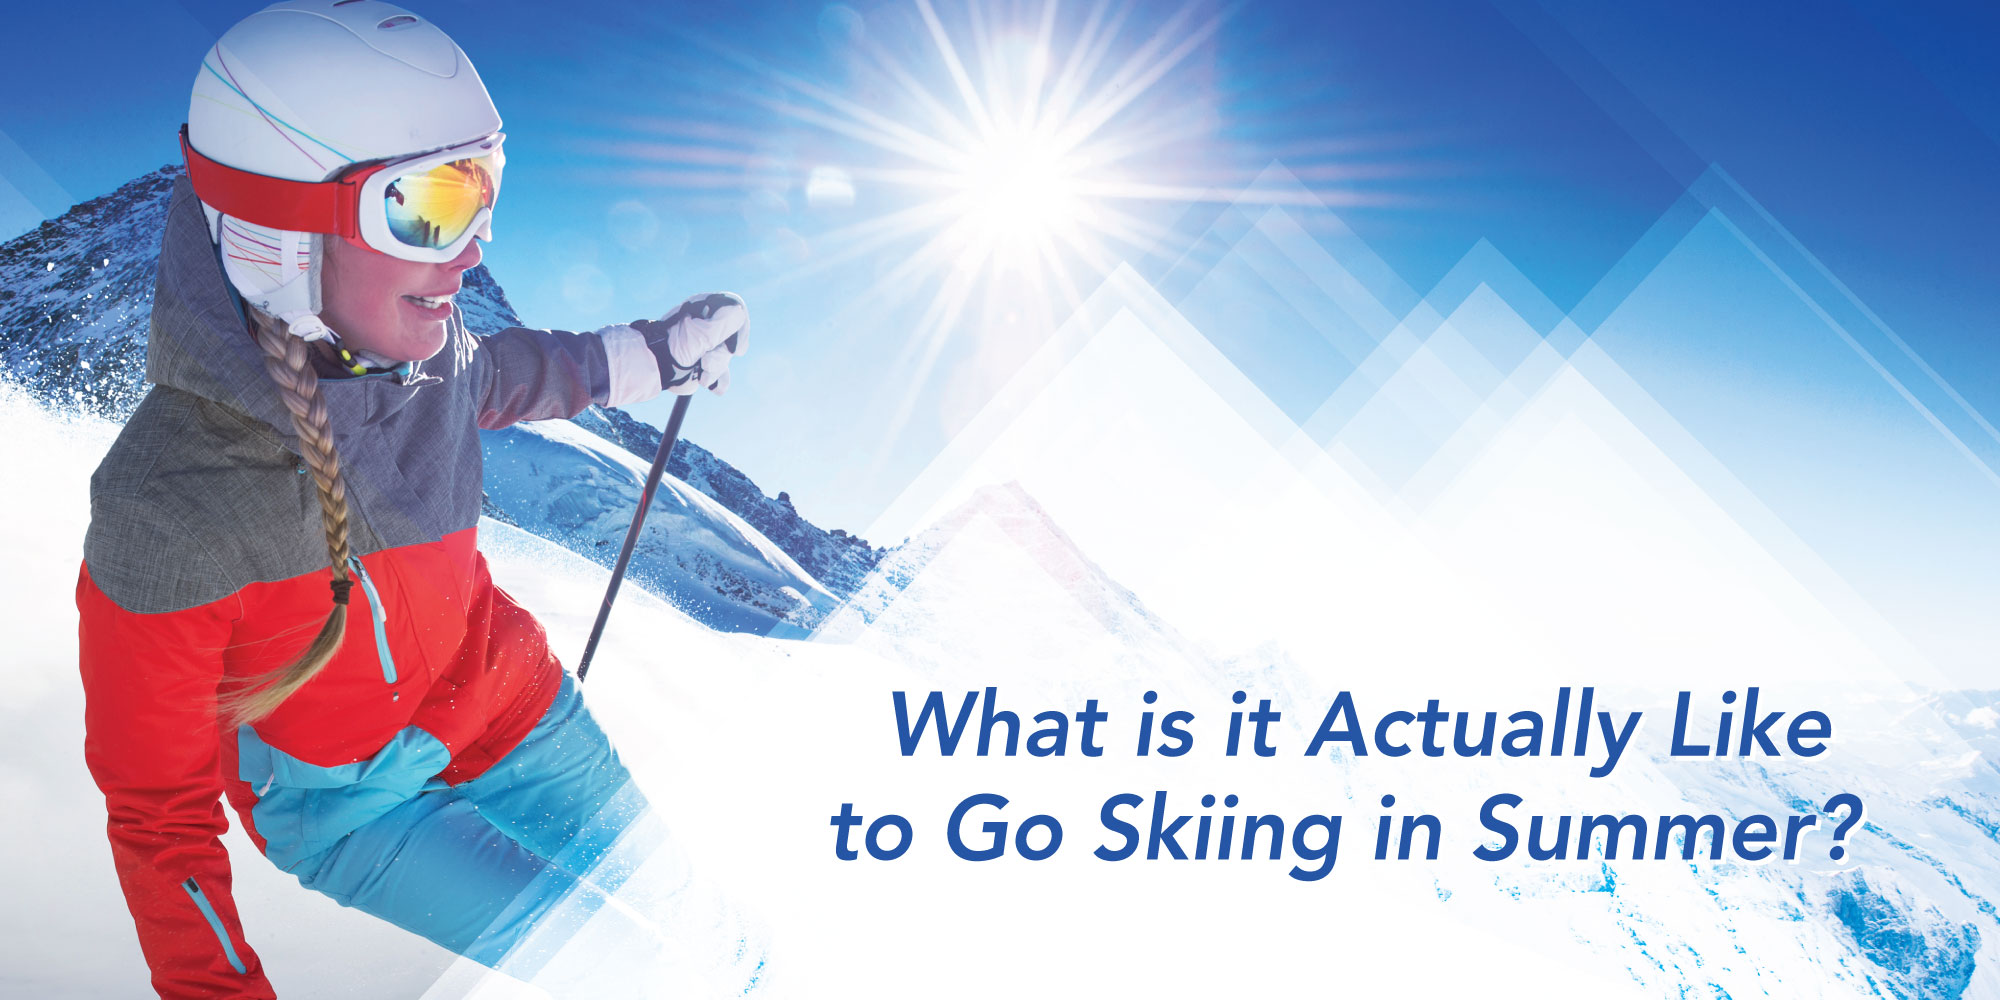 Someone skiing in summer